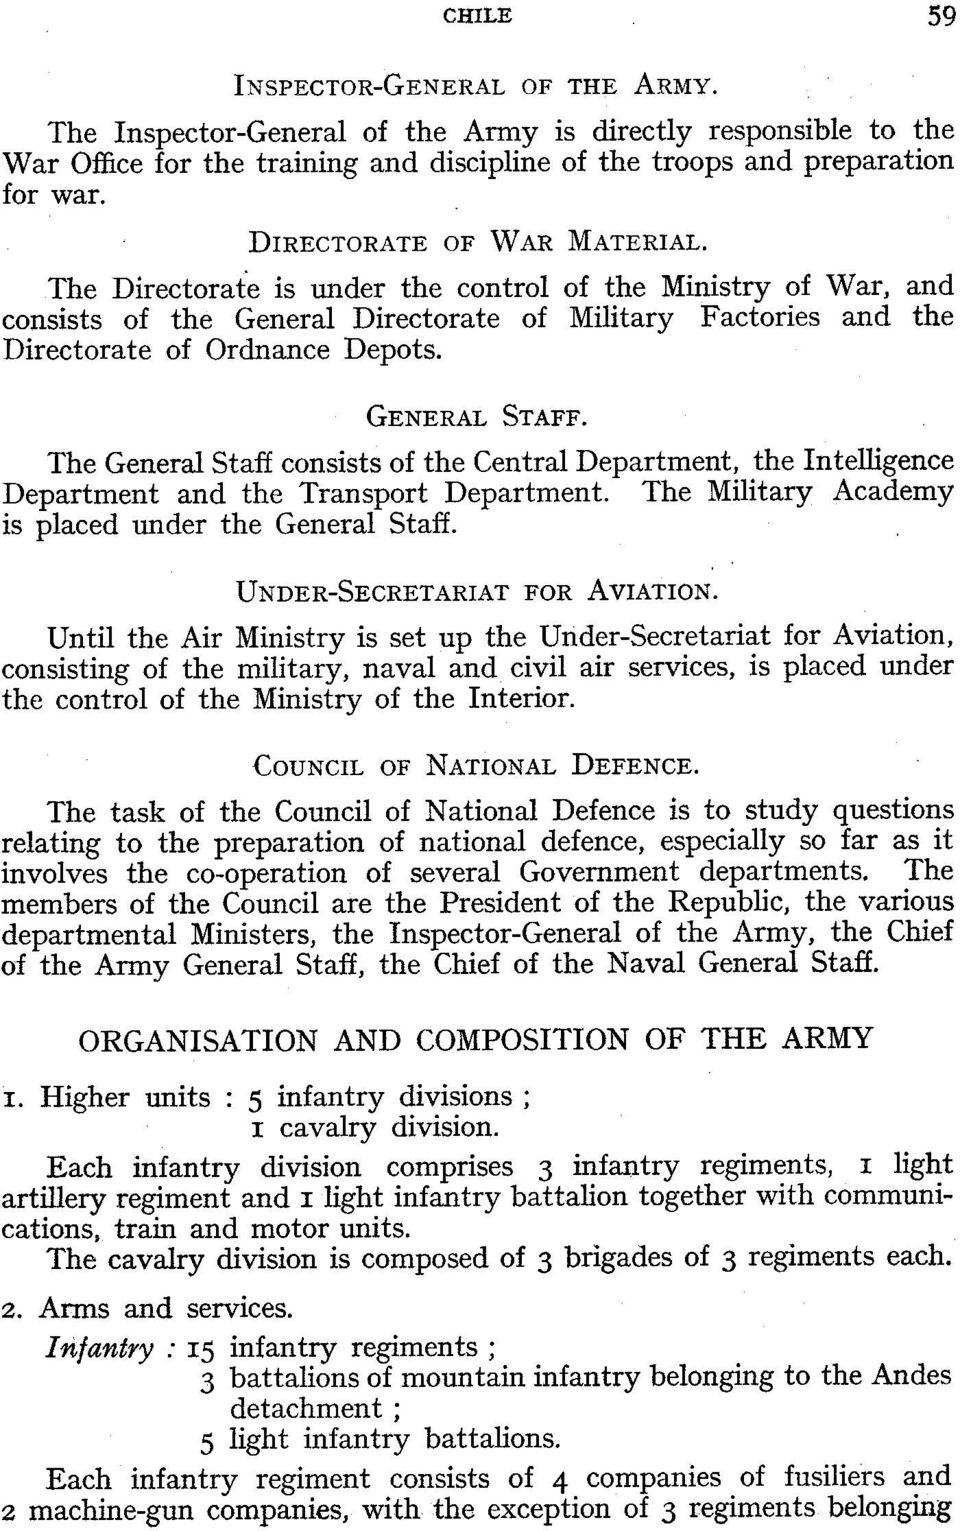 GENERAL STAFF. The General Staff consists of the Central Department, the Intelligence Department and the Transport Department. The Military Academy is placed under the General Staff.